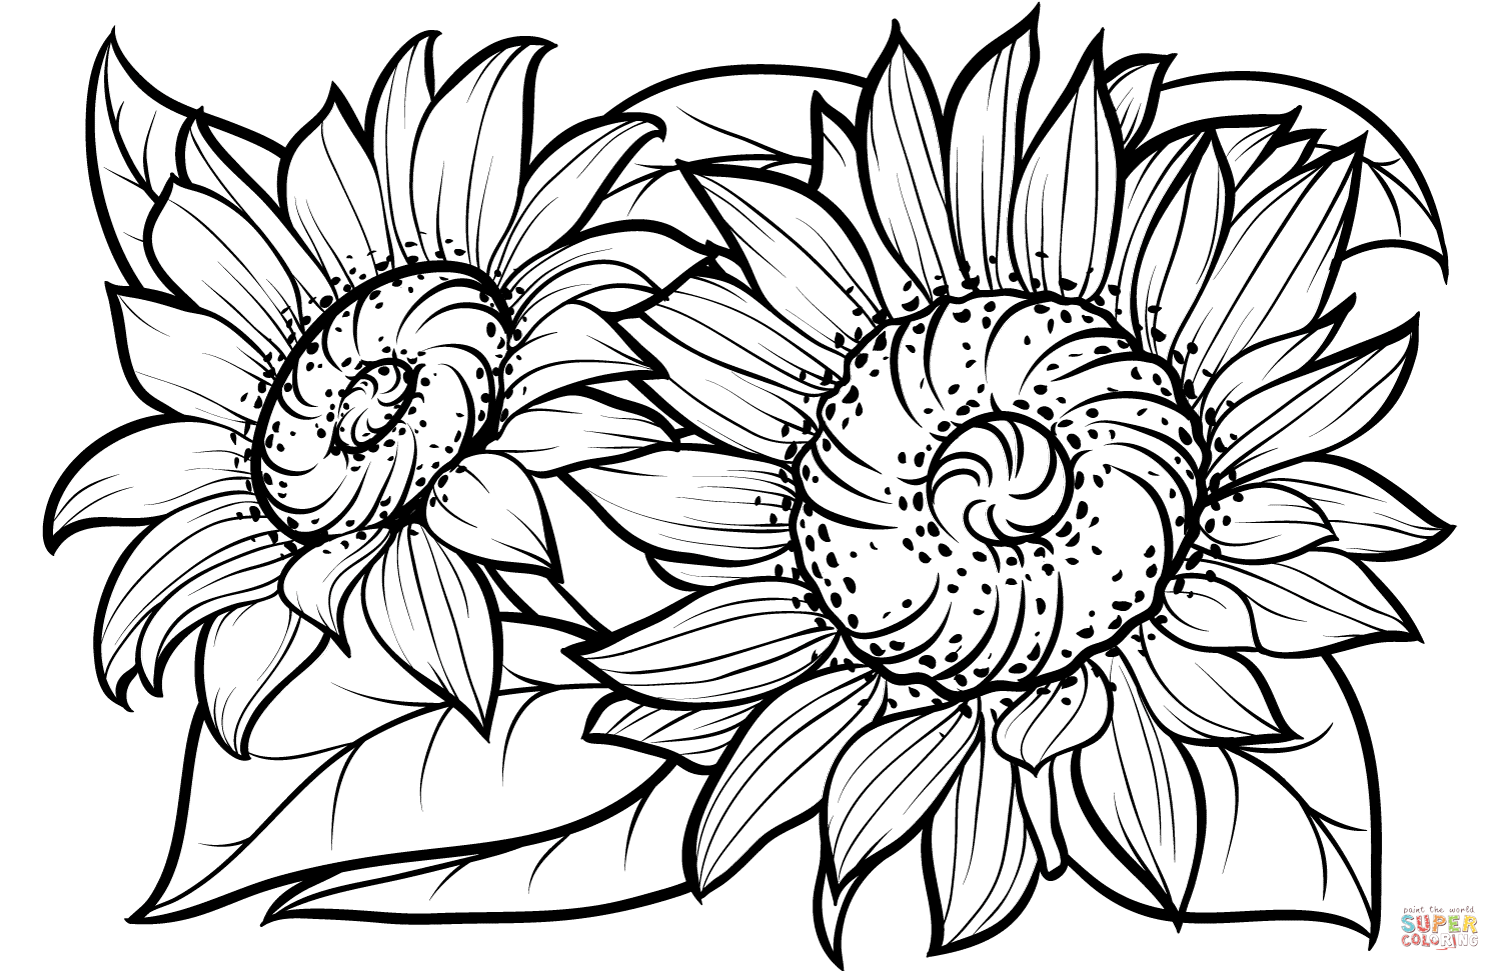 coloring sunflowers printable sunflower coloring pages free coloring pages clipartsco sunflowers coloring printable